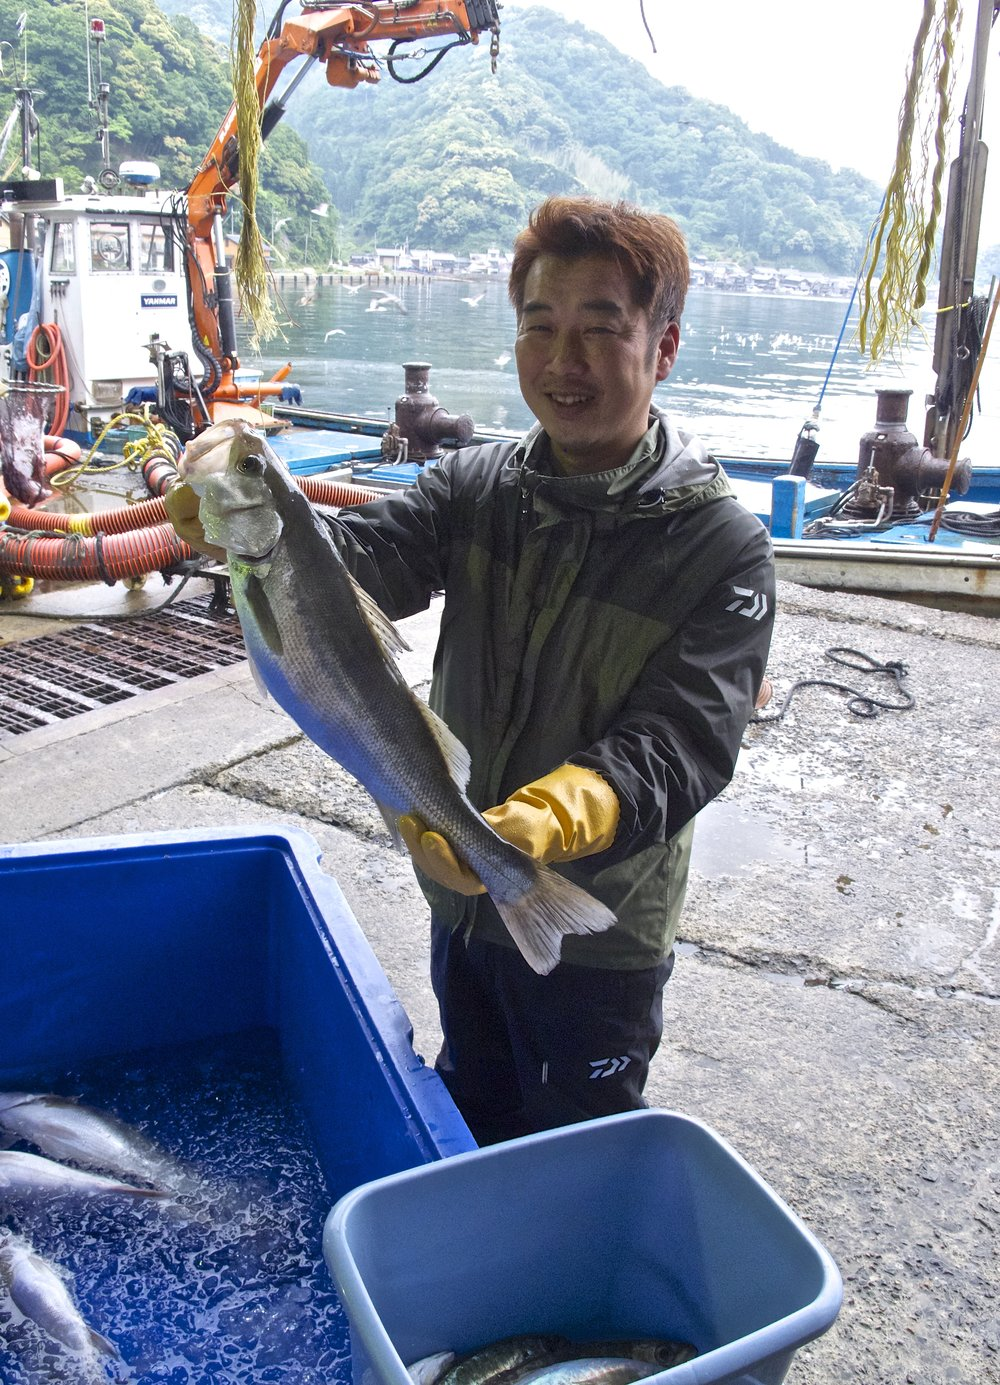 Kengo Kagi holds up a  sawara,  or Spanish mackerel, at Ine's fish harbor, the  hamauri .  Sawara  is considered the best kind of mackerel in Japan because of its size and succulent white flesh.